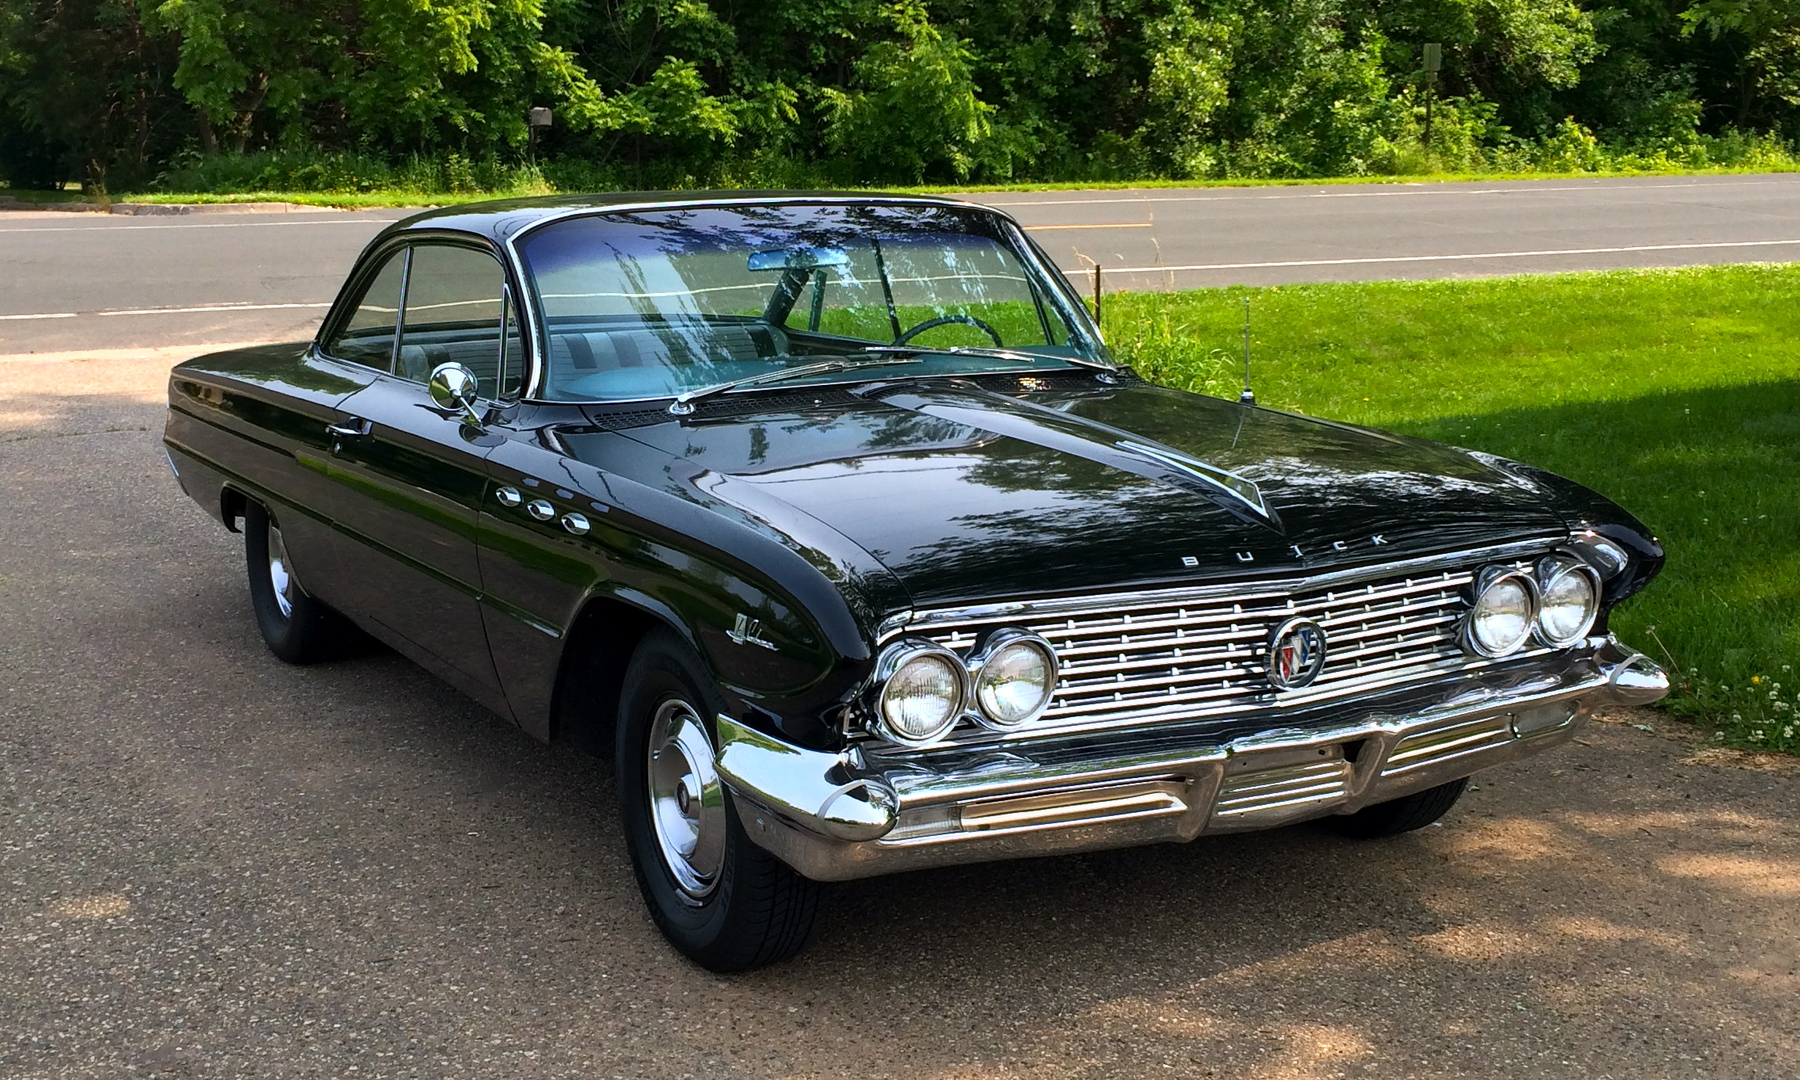 1961 Buick Lesabre Craigslist - Year of Clean Water